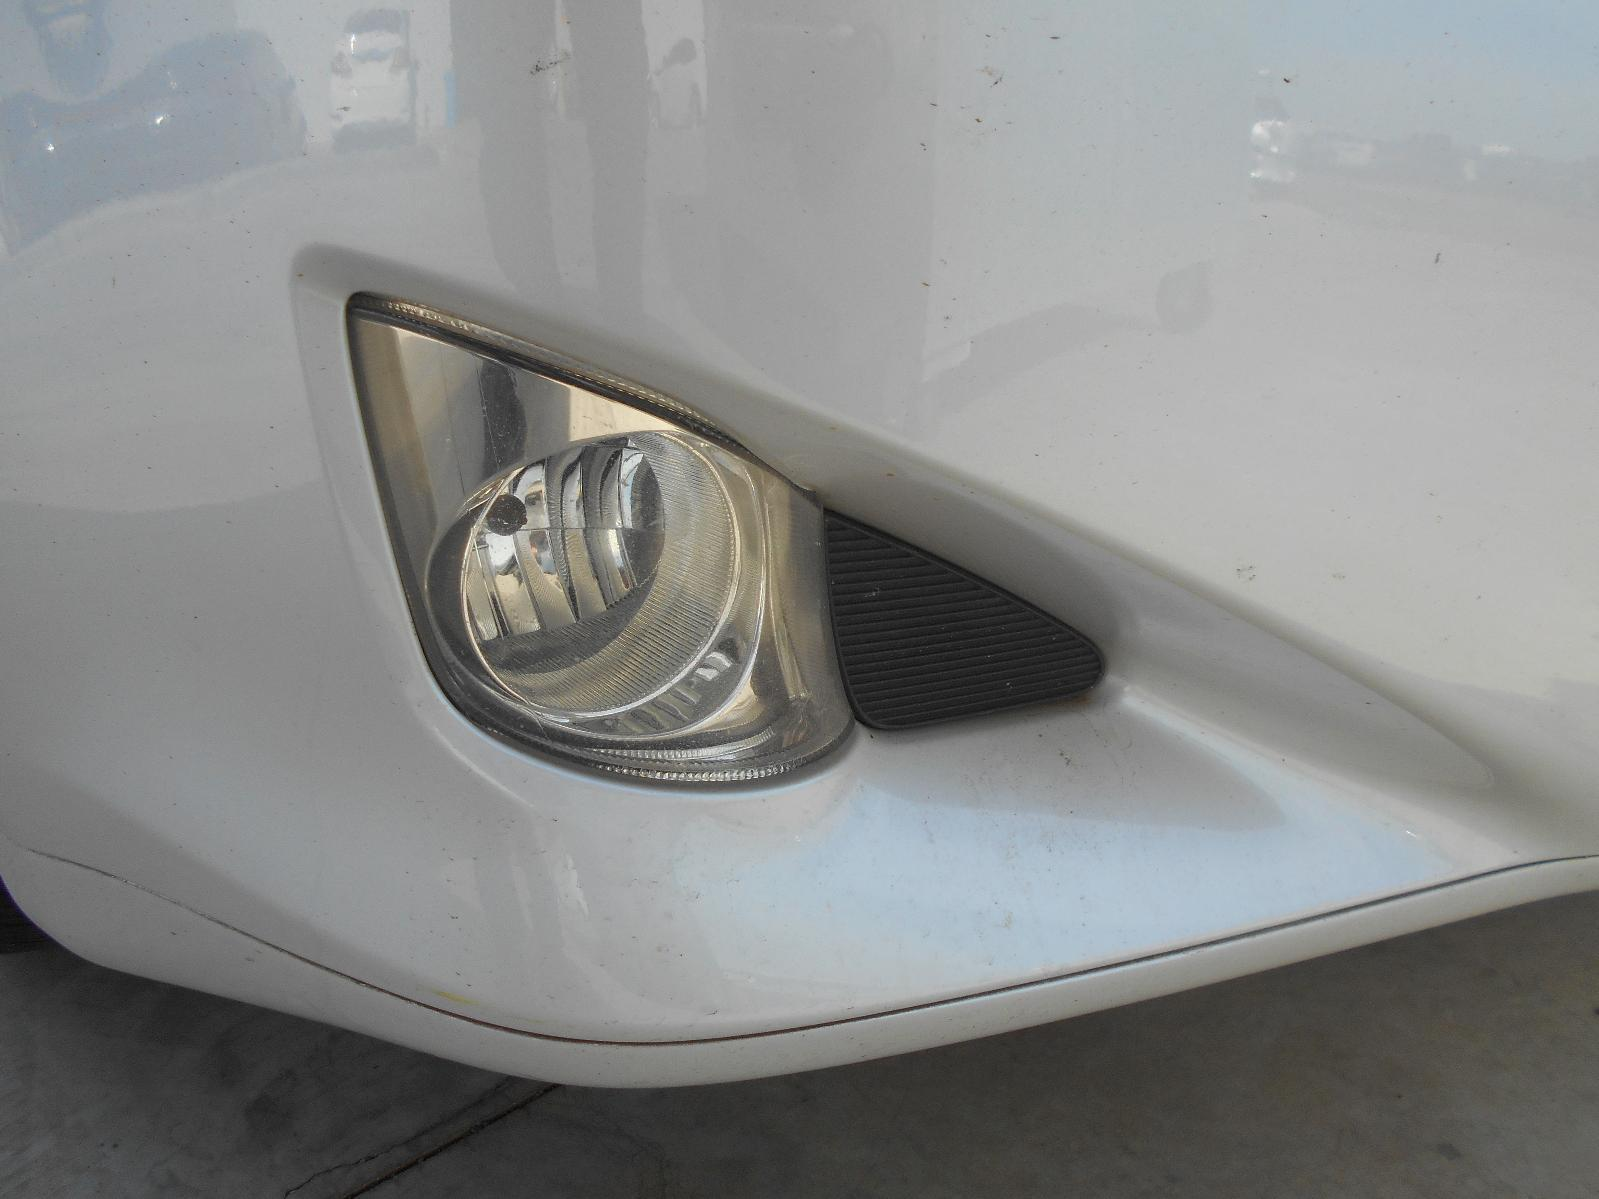 LEXUS IS250/IS250C, Right Indicator/Fog/Side, IS250, BUMPER FOGLAMP, GSE20R, 11/05-09/10